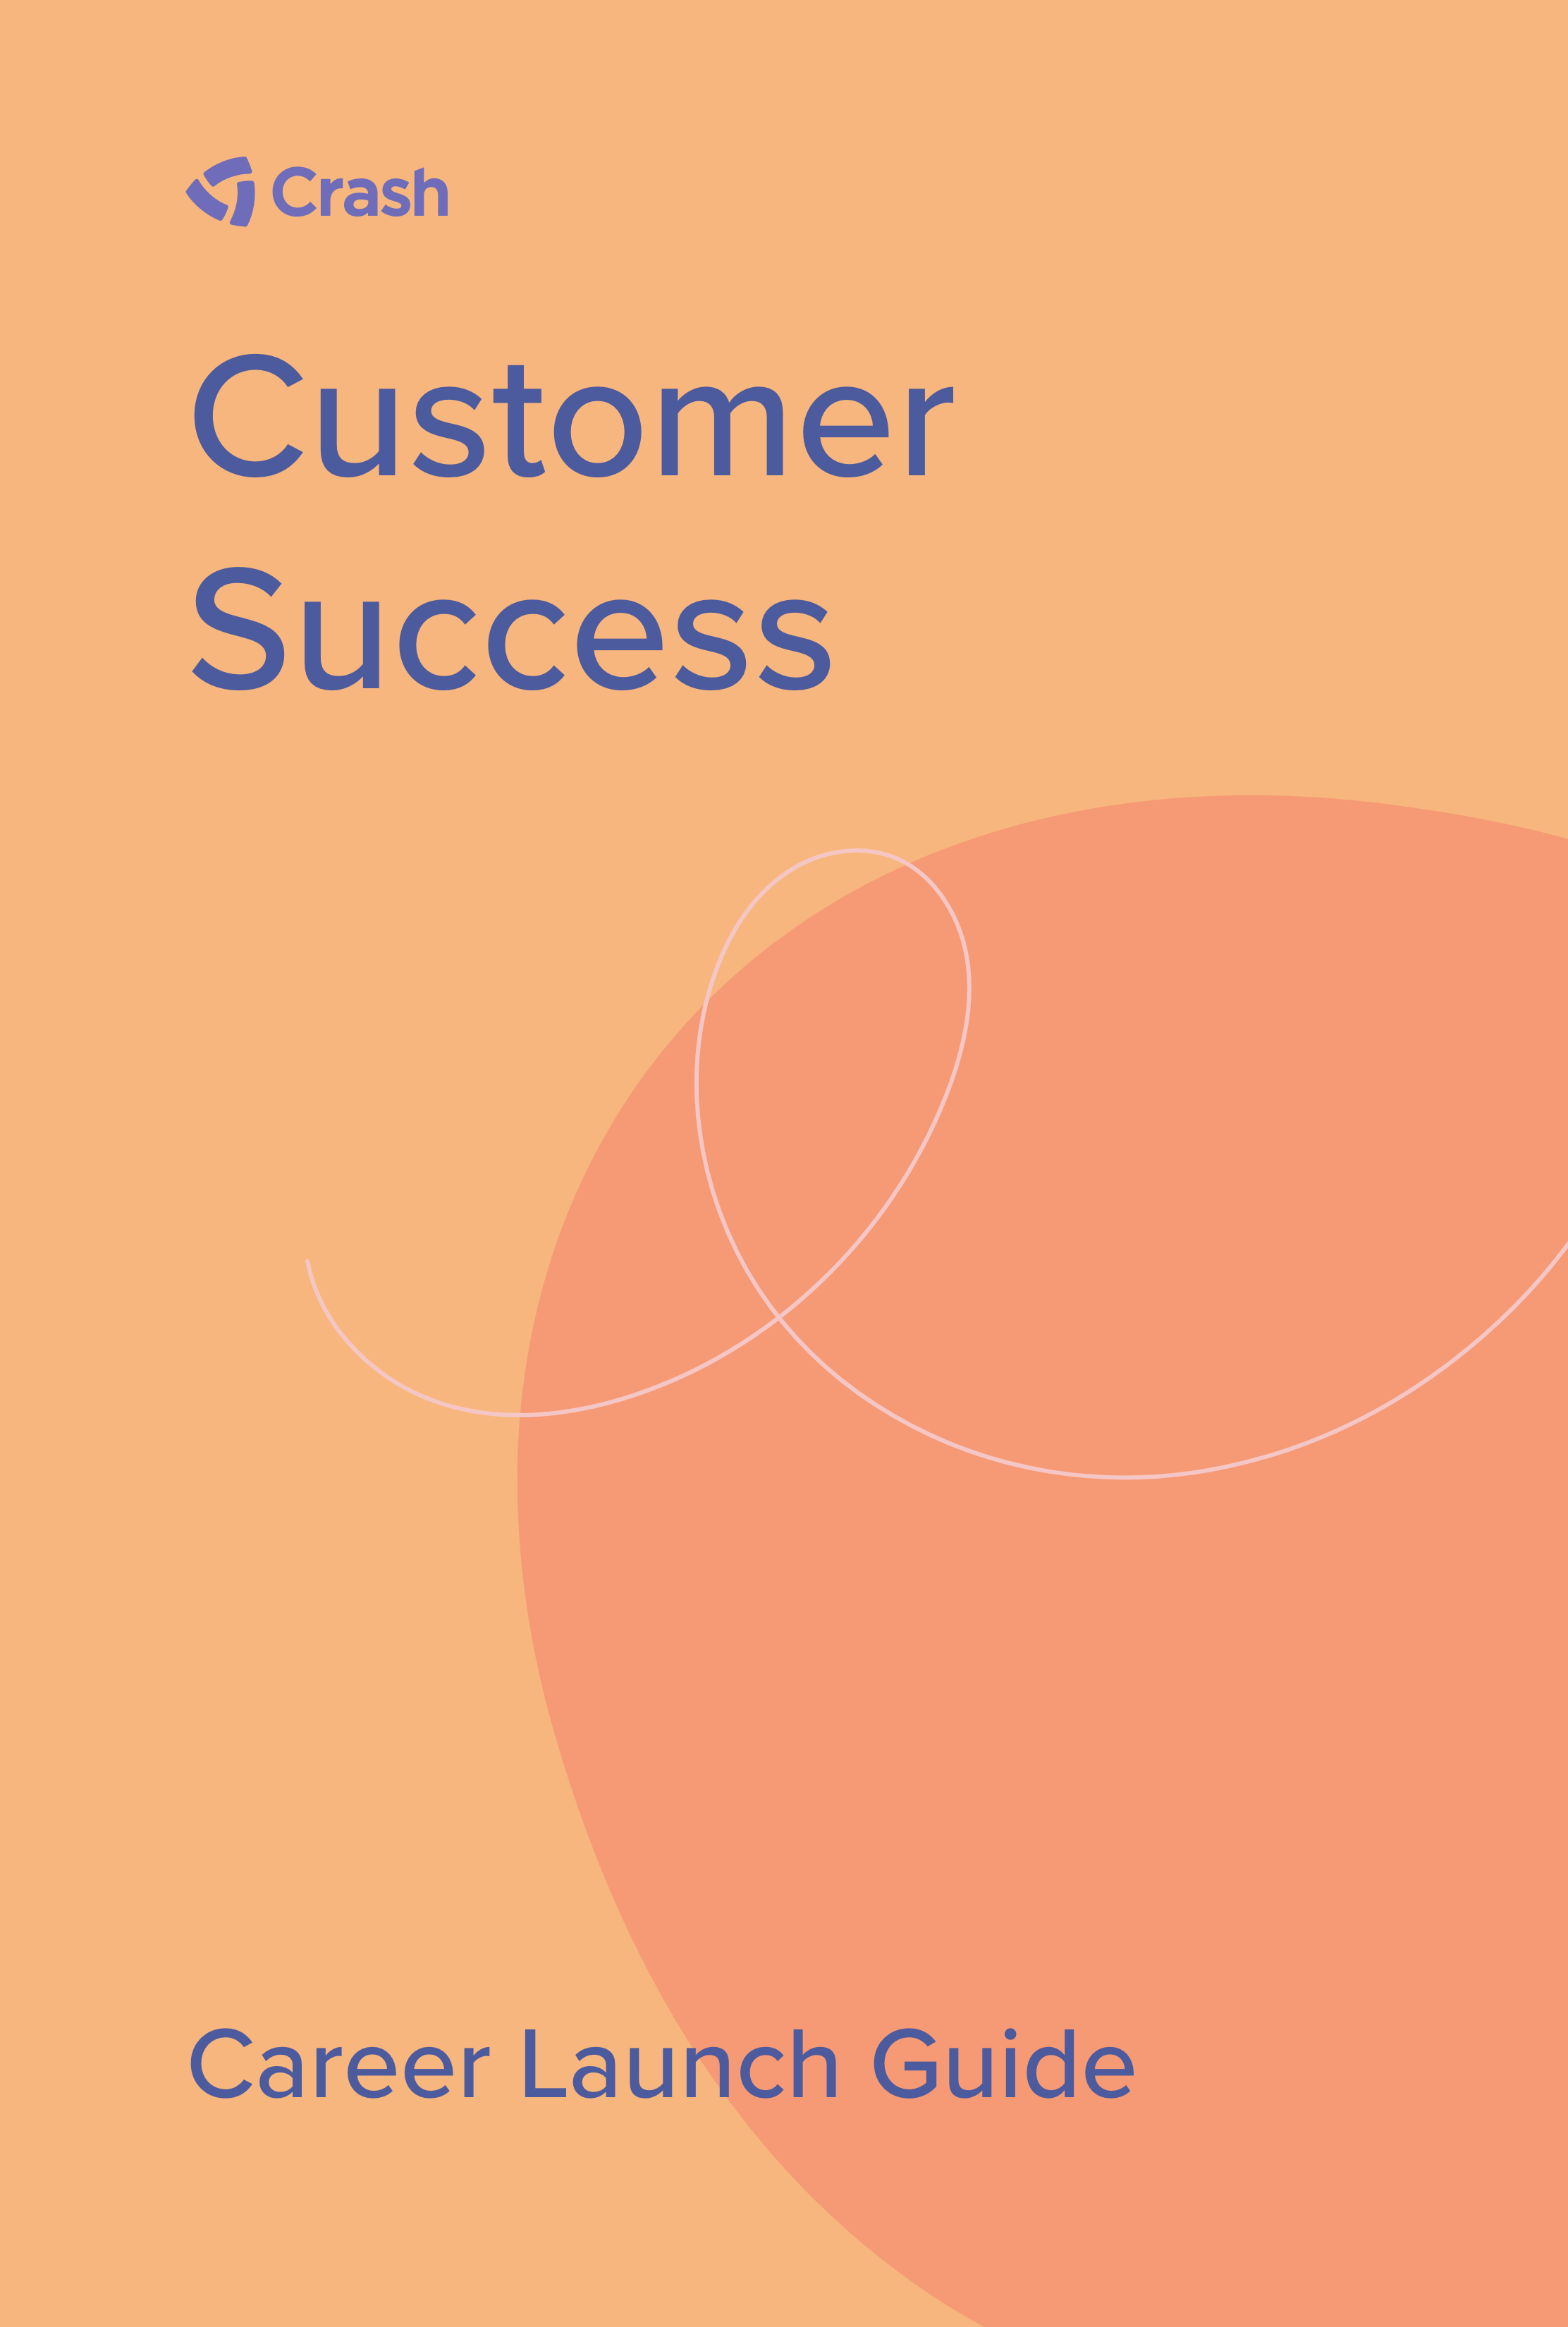 customer success crash guide cover image